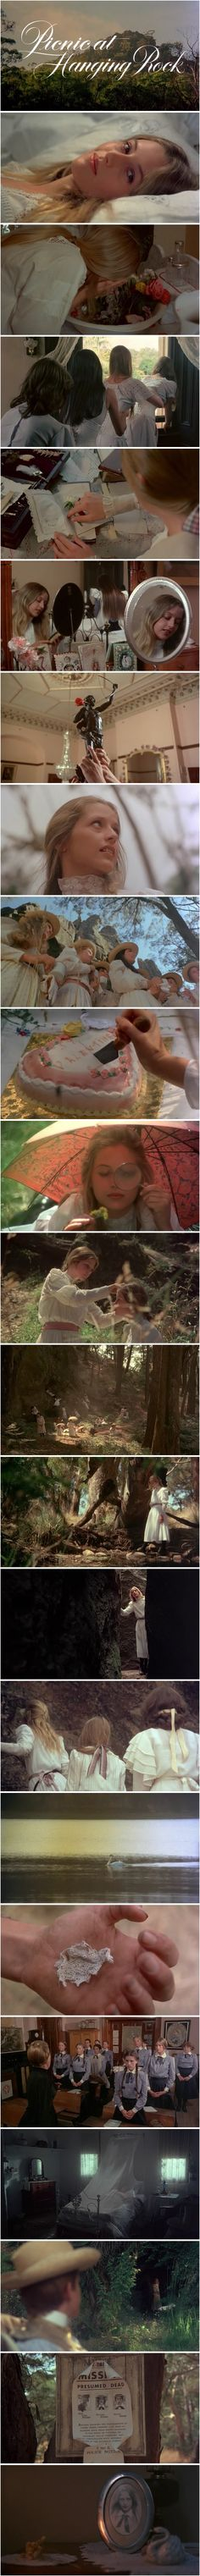 Picnic at hanging rock. I loved this movie. And hanging rock looks exactly the same in real life. Super spooky but amazing.